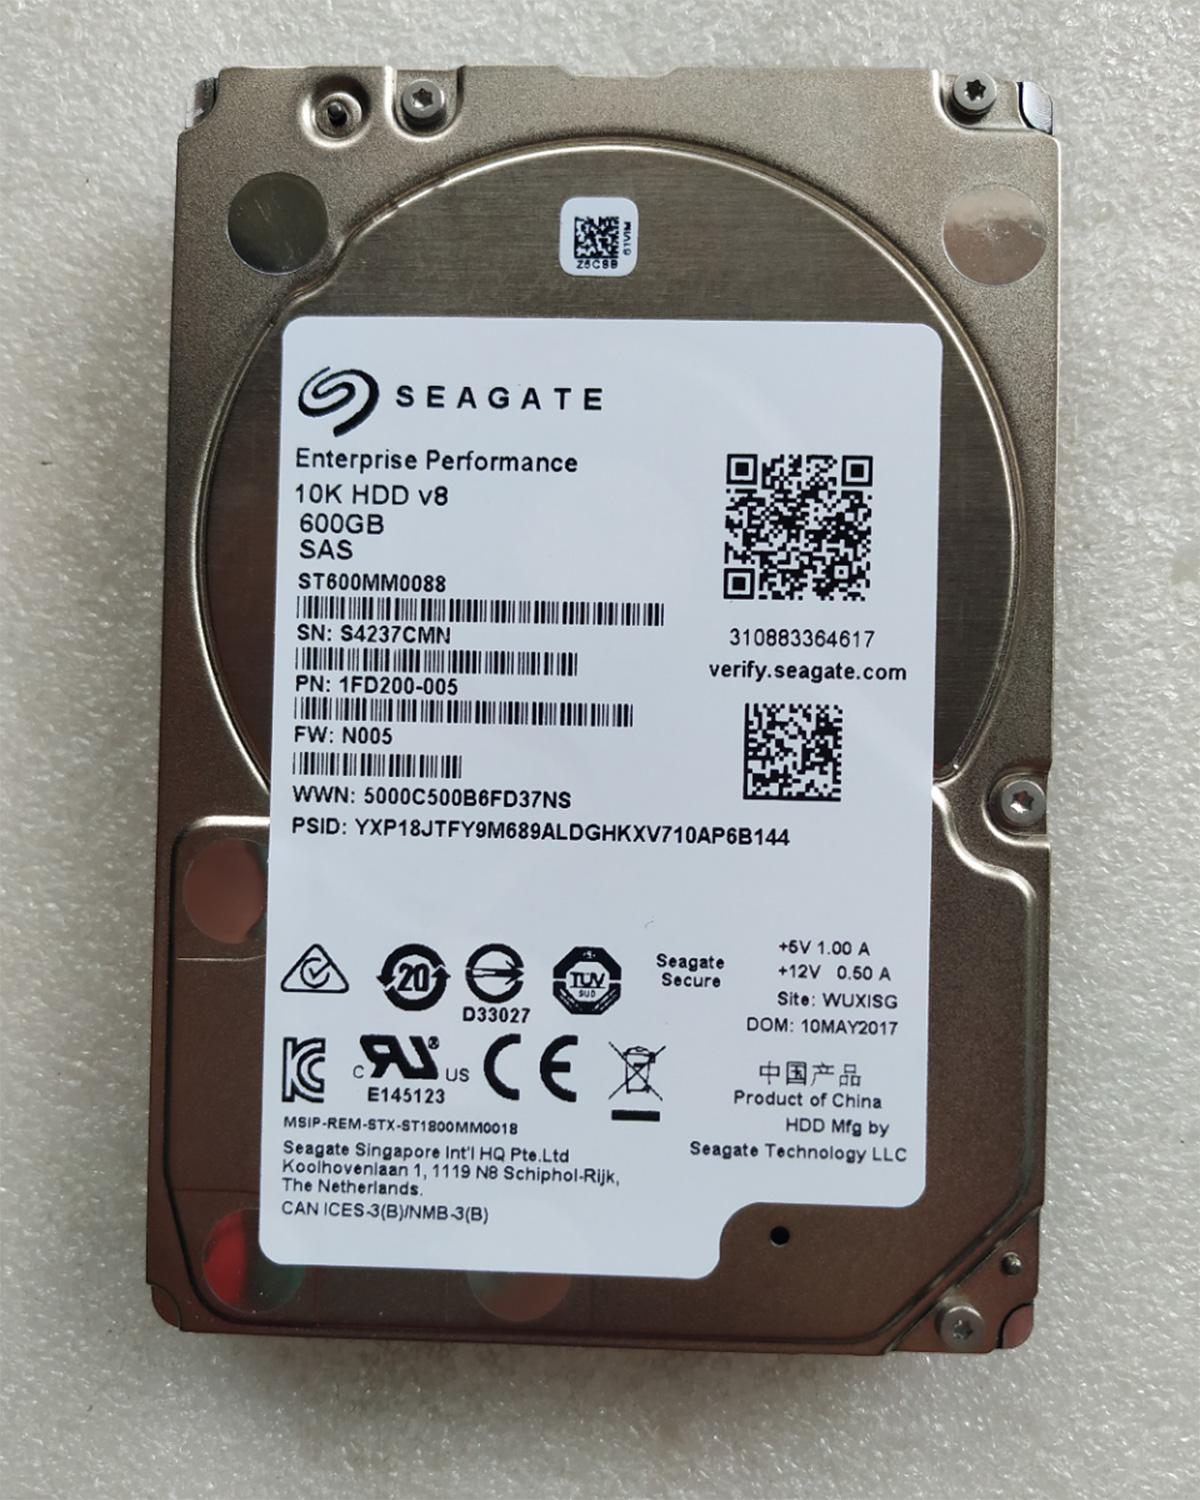 Refurbished New  ST600MM0088 Seagate 600GB 10K 2.5 SAS 12Gb HDD ST600MM0088 Server Hard Drive